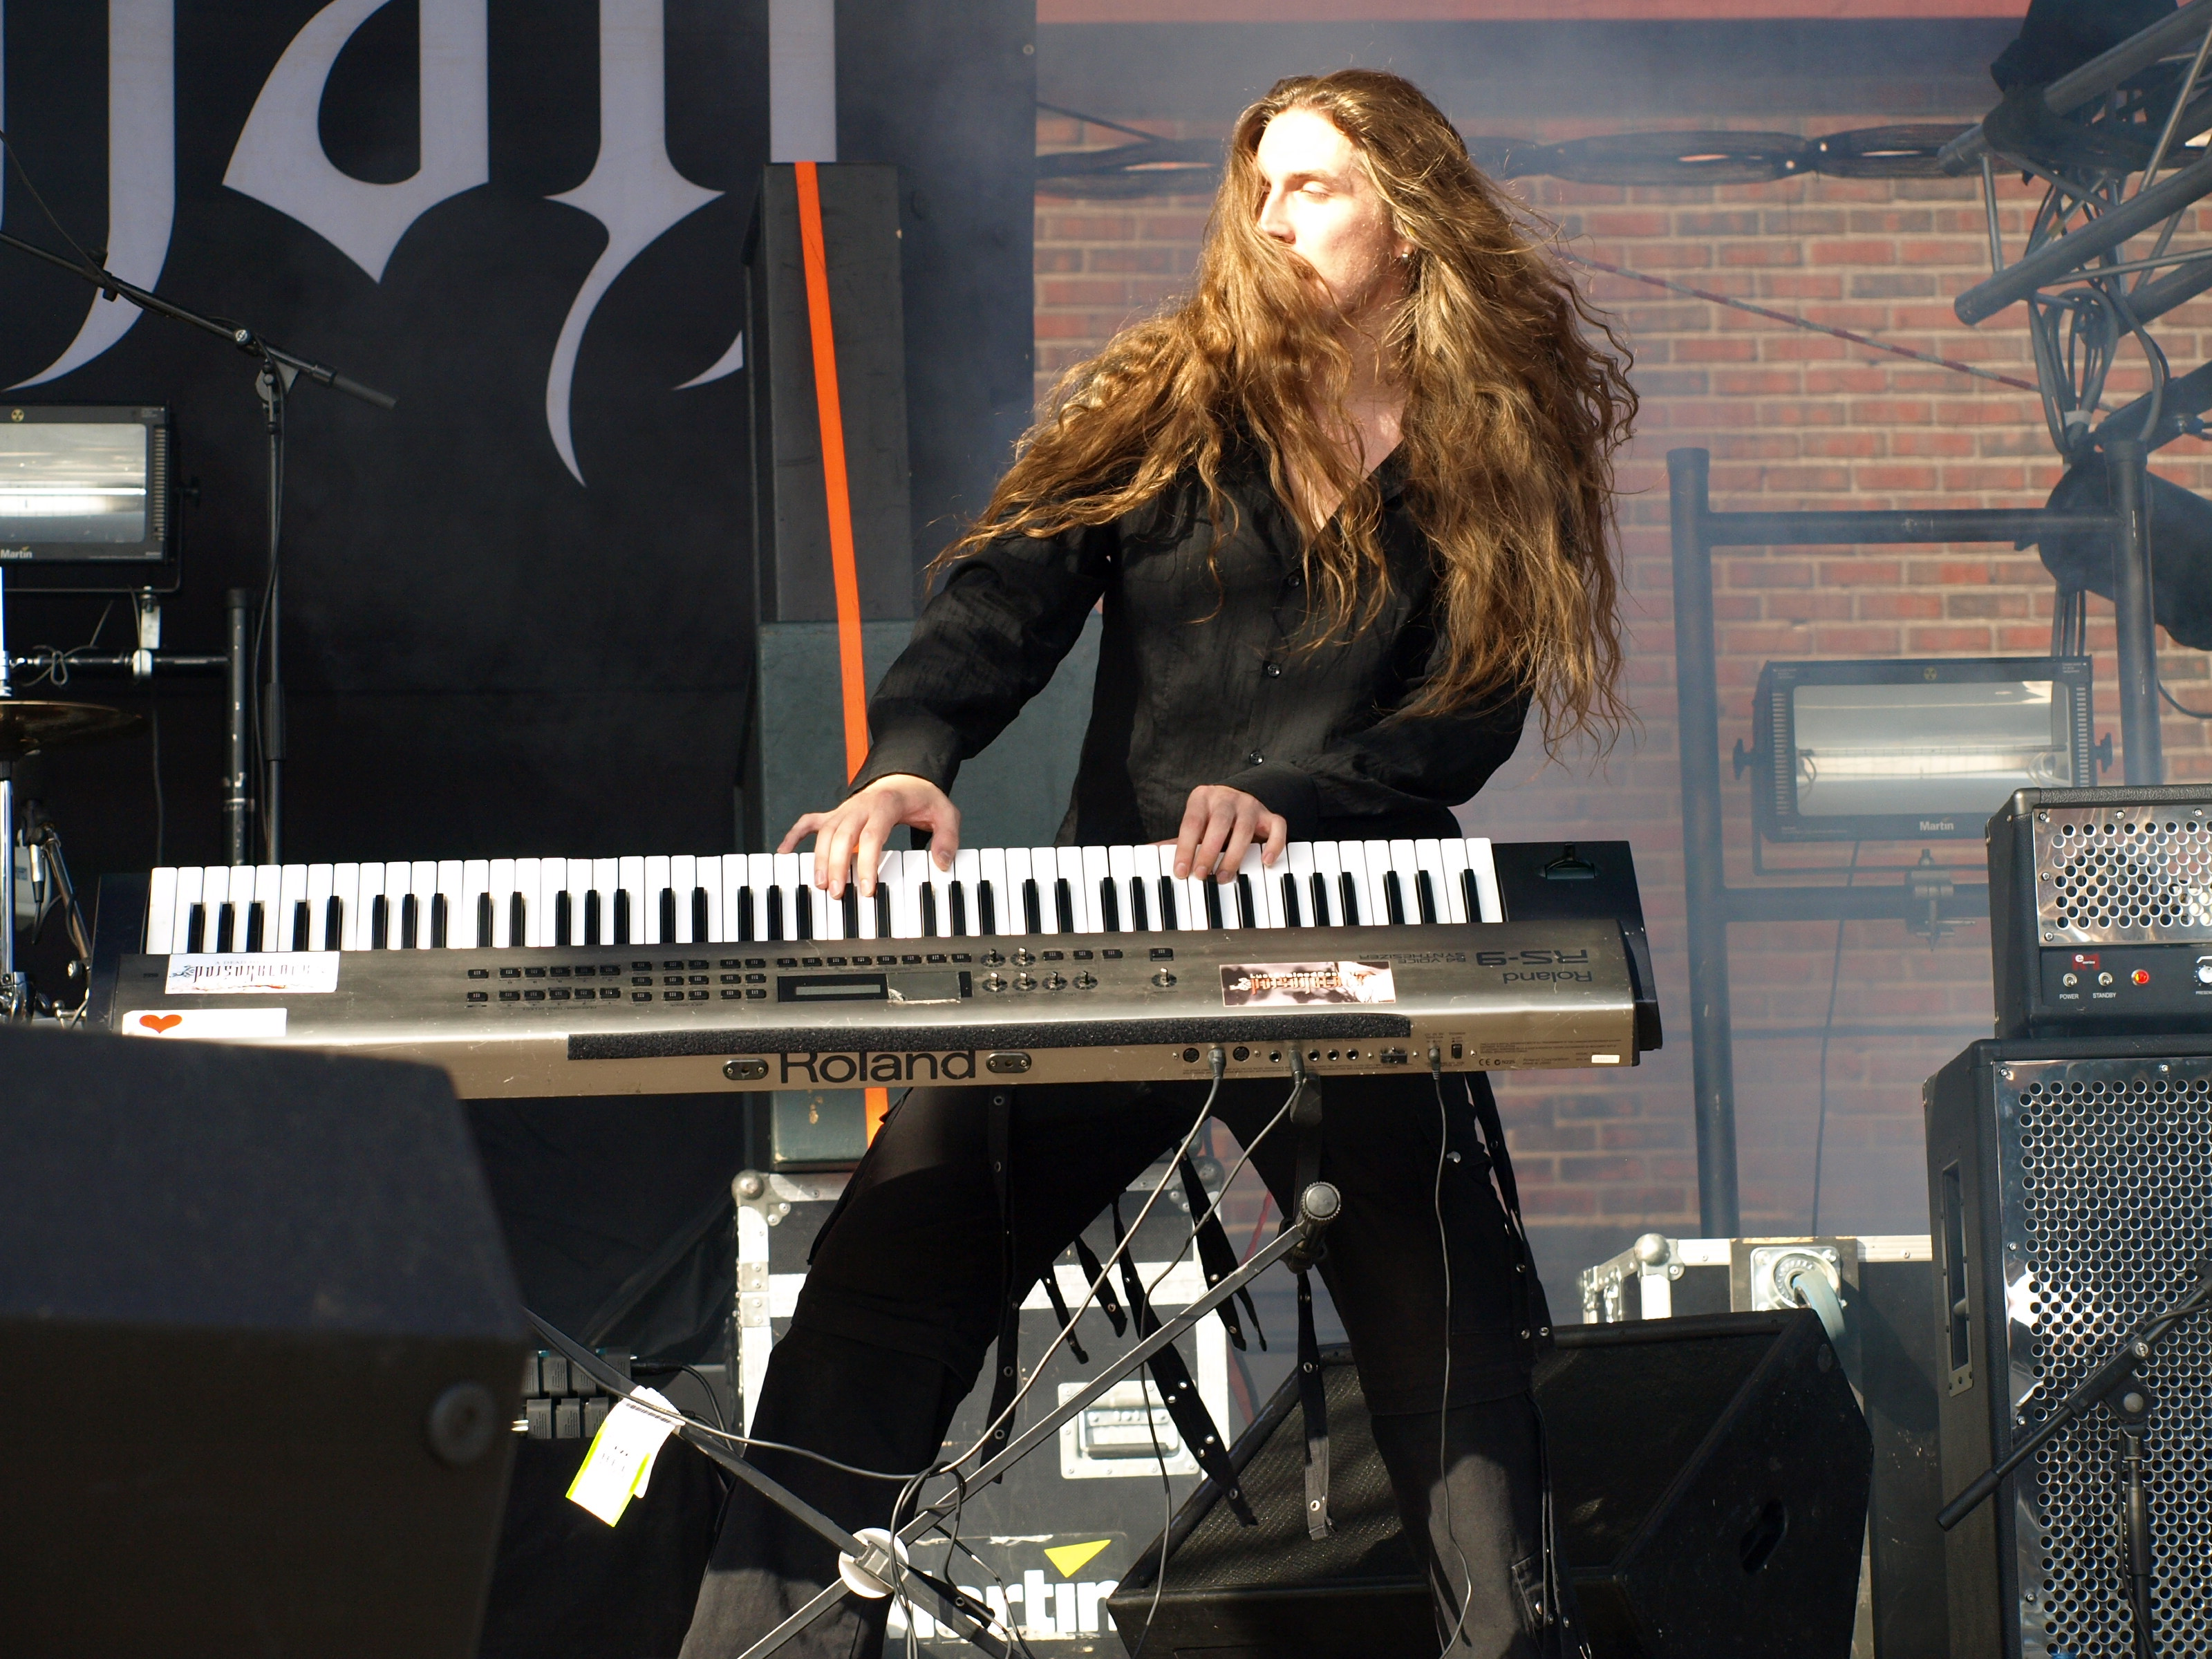 Image Result For Keyboardist In A Band